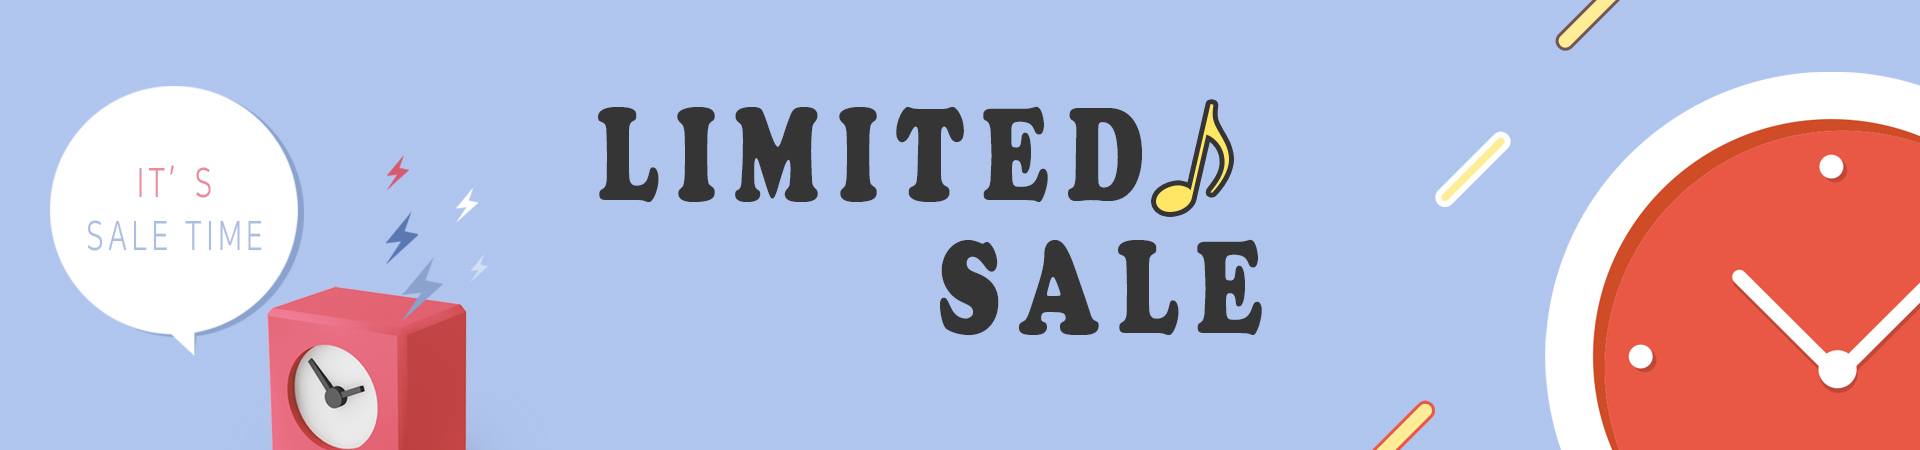 LIMITED SALE 리밋세일